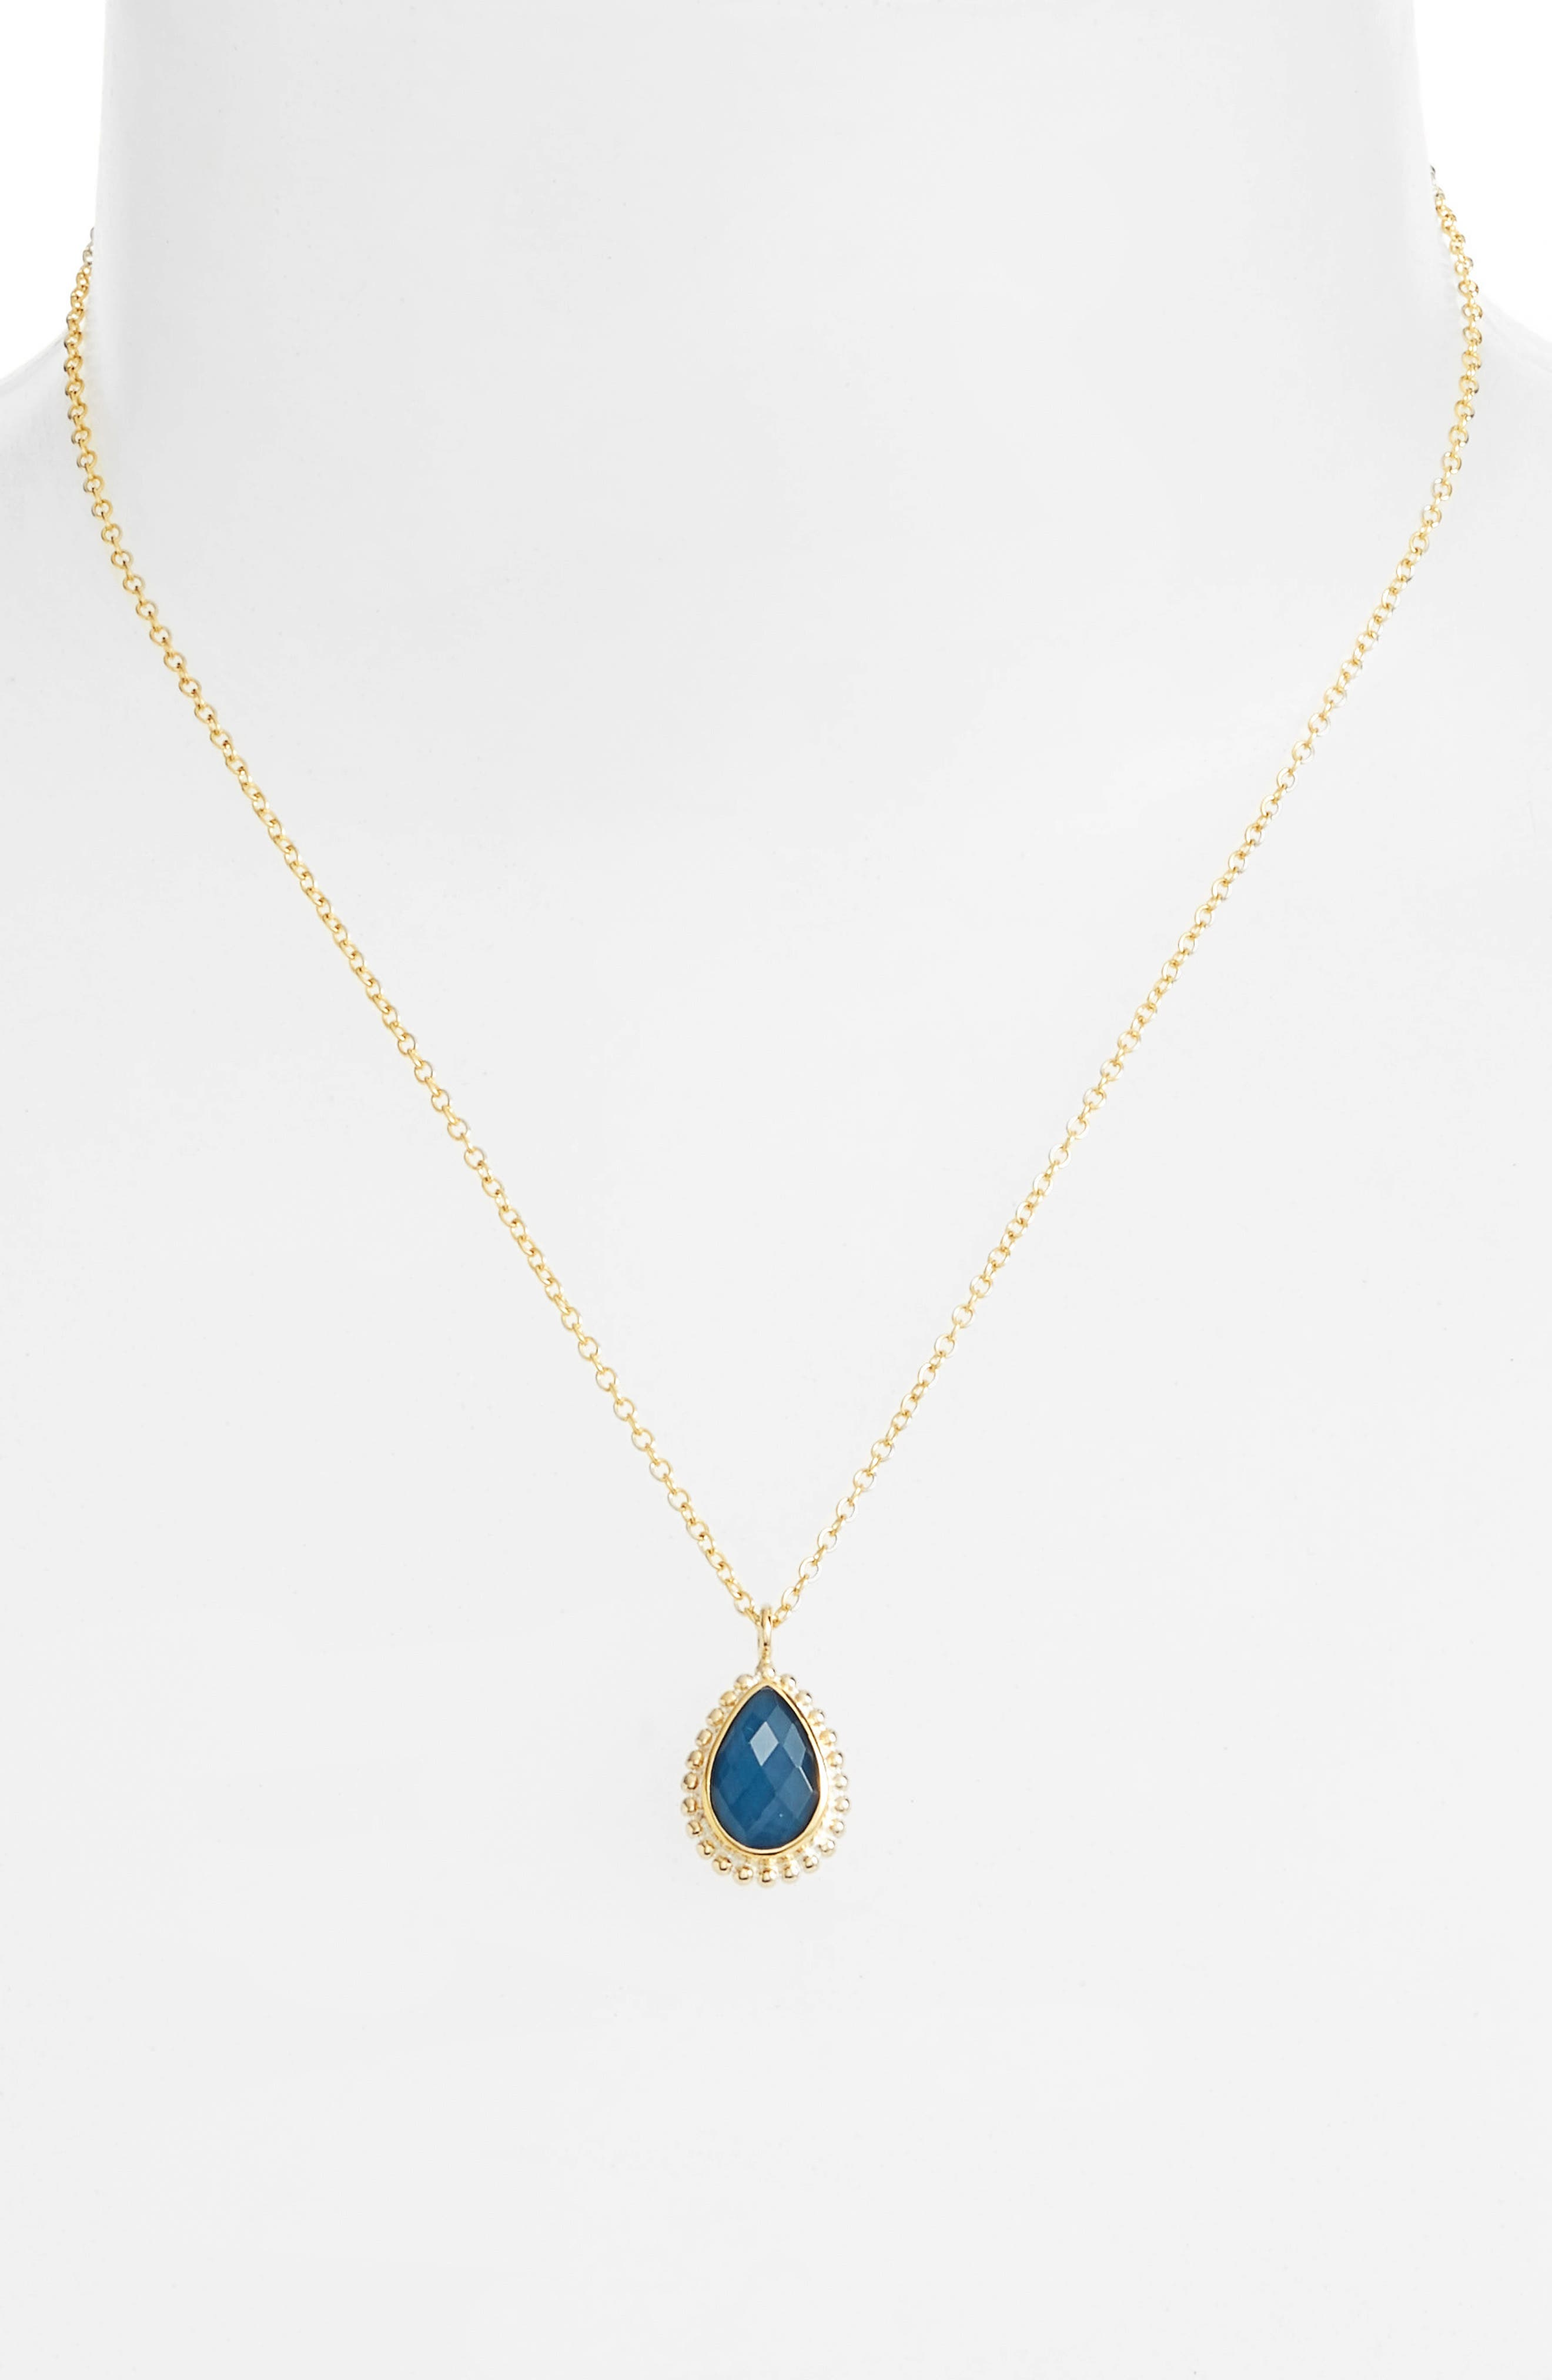 Blue Quartz Teardrop Pendant Necklace,                             Main thumbnail 1, color,                             Gold/ Blue Quartz